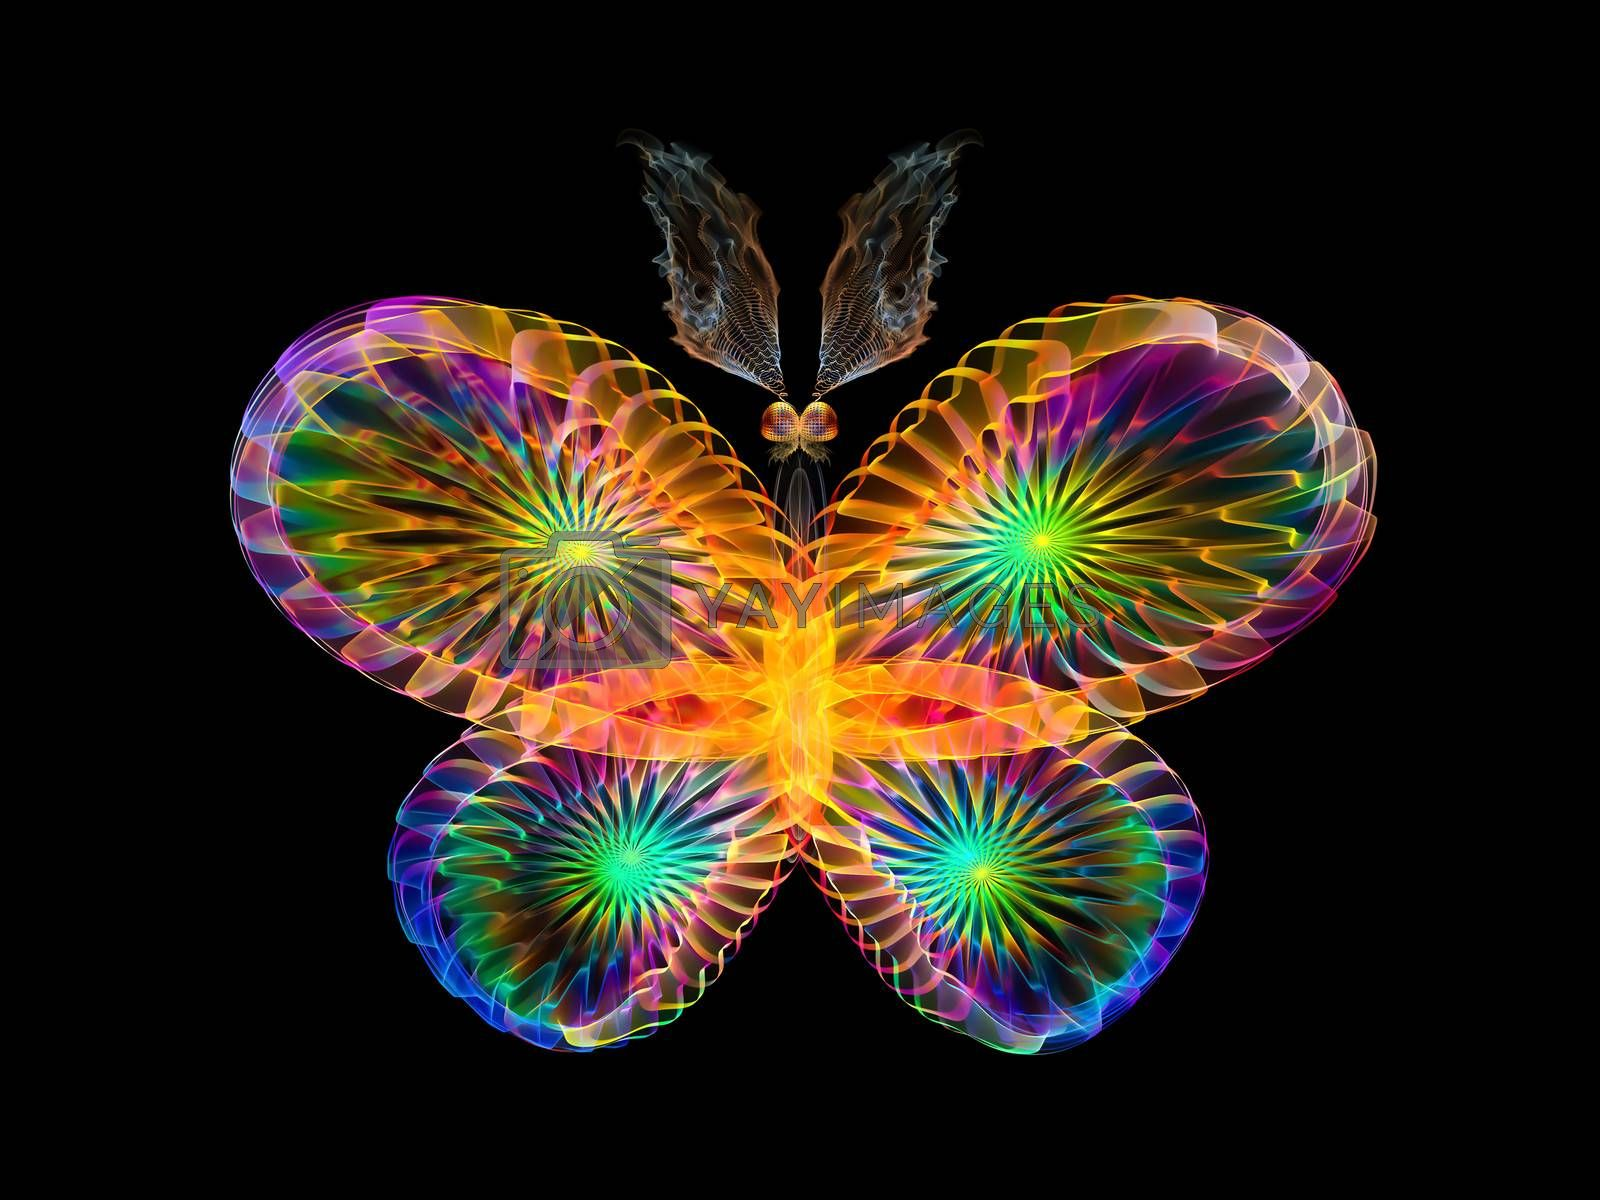 Butterflies of Never series. Composition of fractal organic textures on the subject of science, biology,  design, creativity and imagination